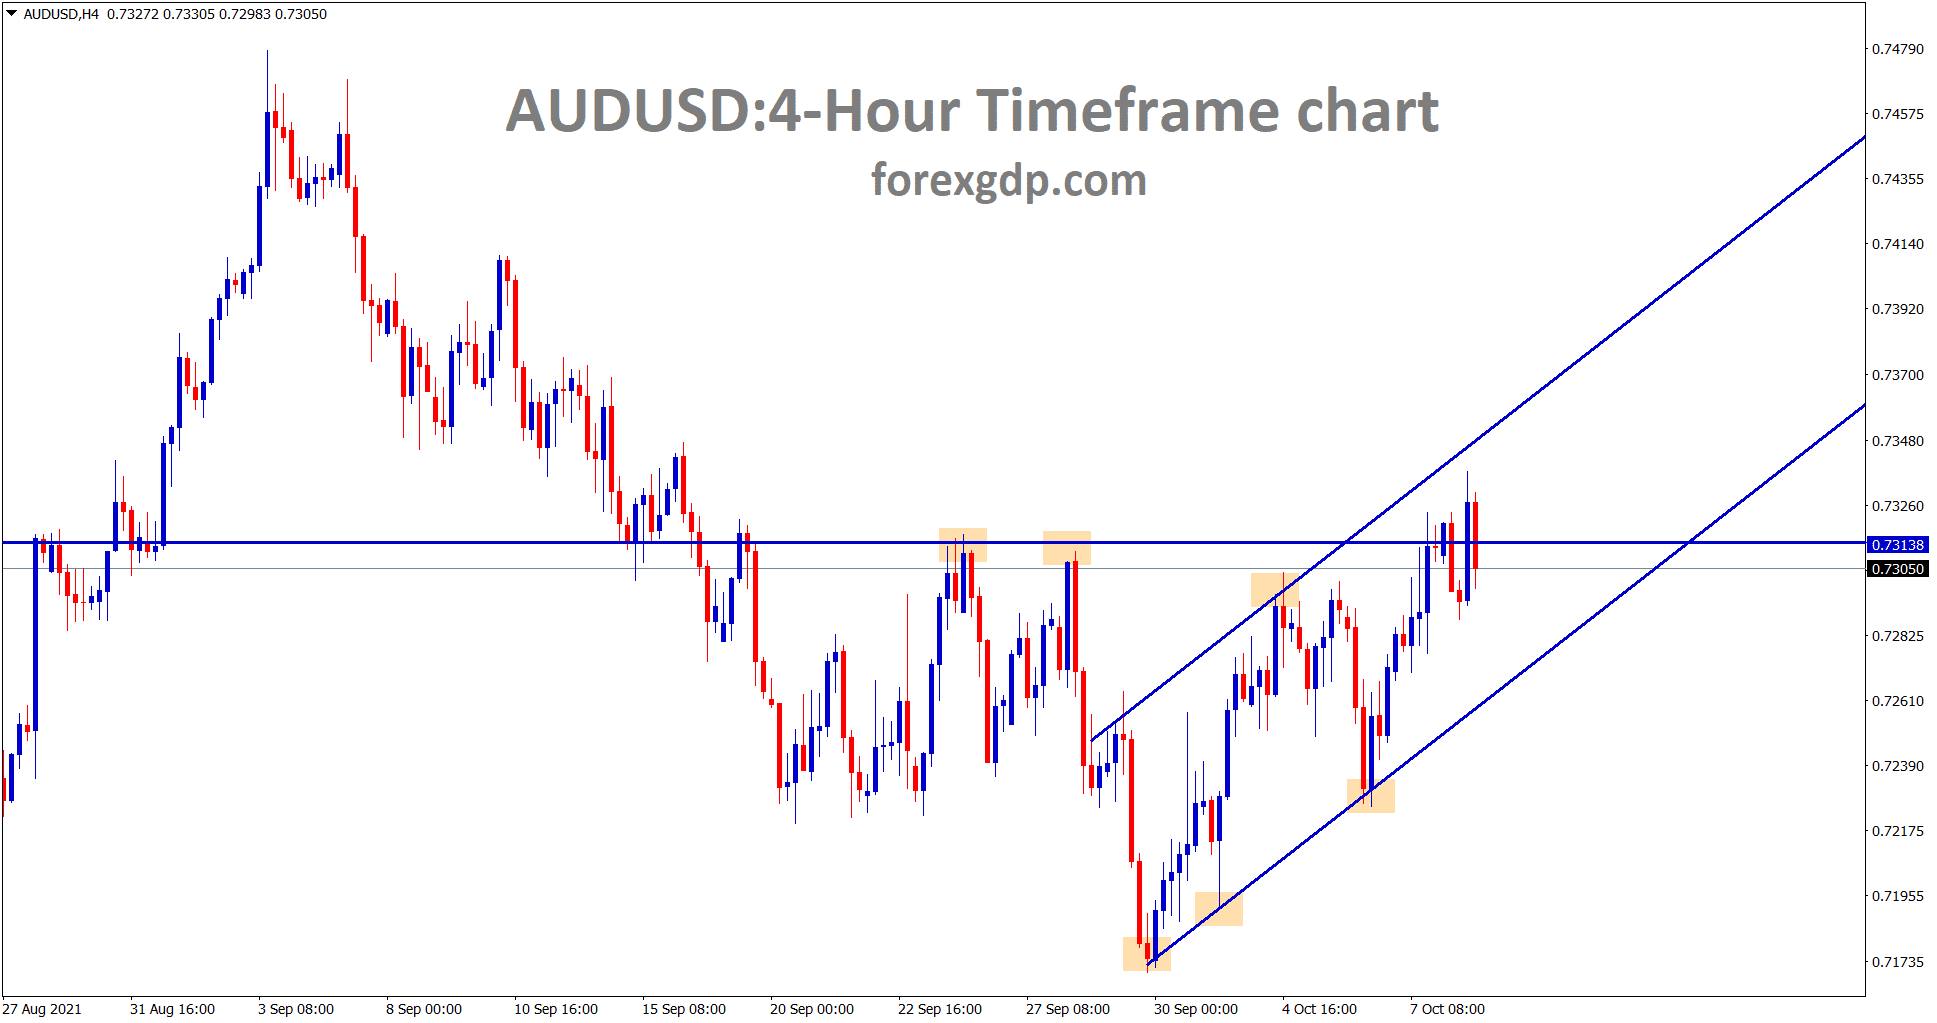 AUDUSD is consolidating at the resistance area and the higher high level of an uptrend line